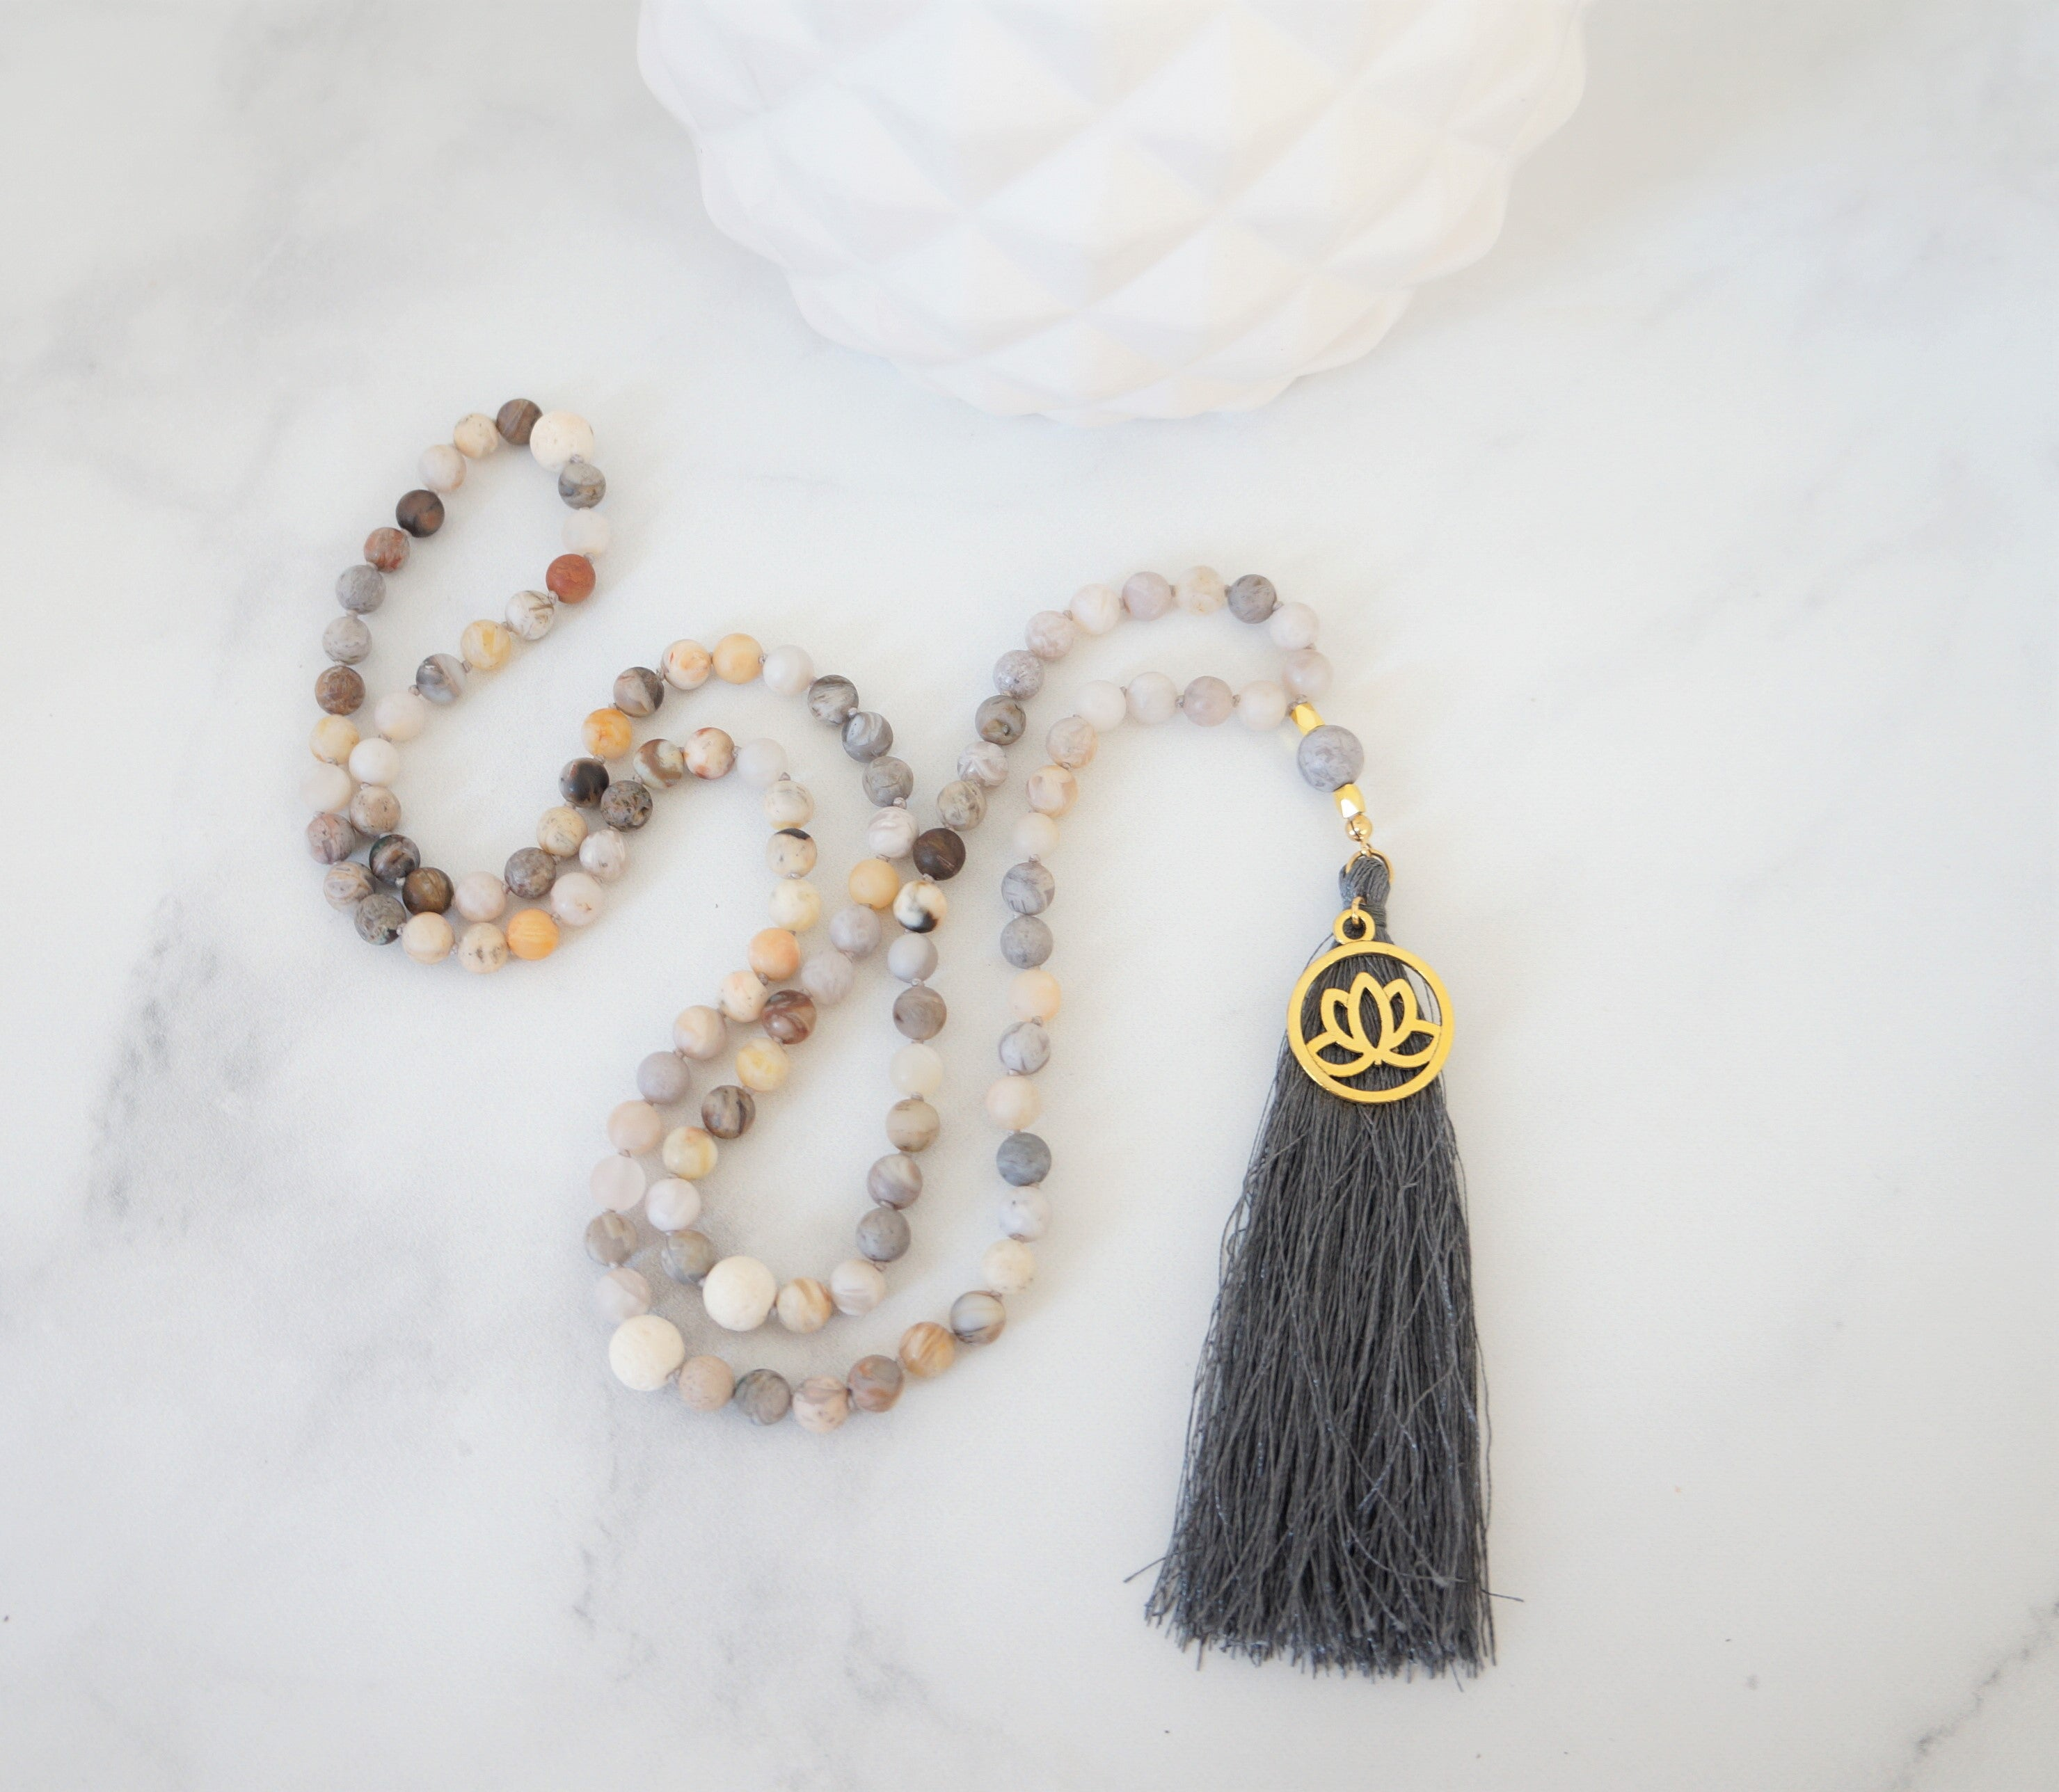 Harmony Mantra Mala - Carolyn Hearn Designs